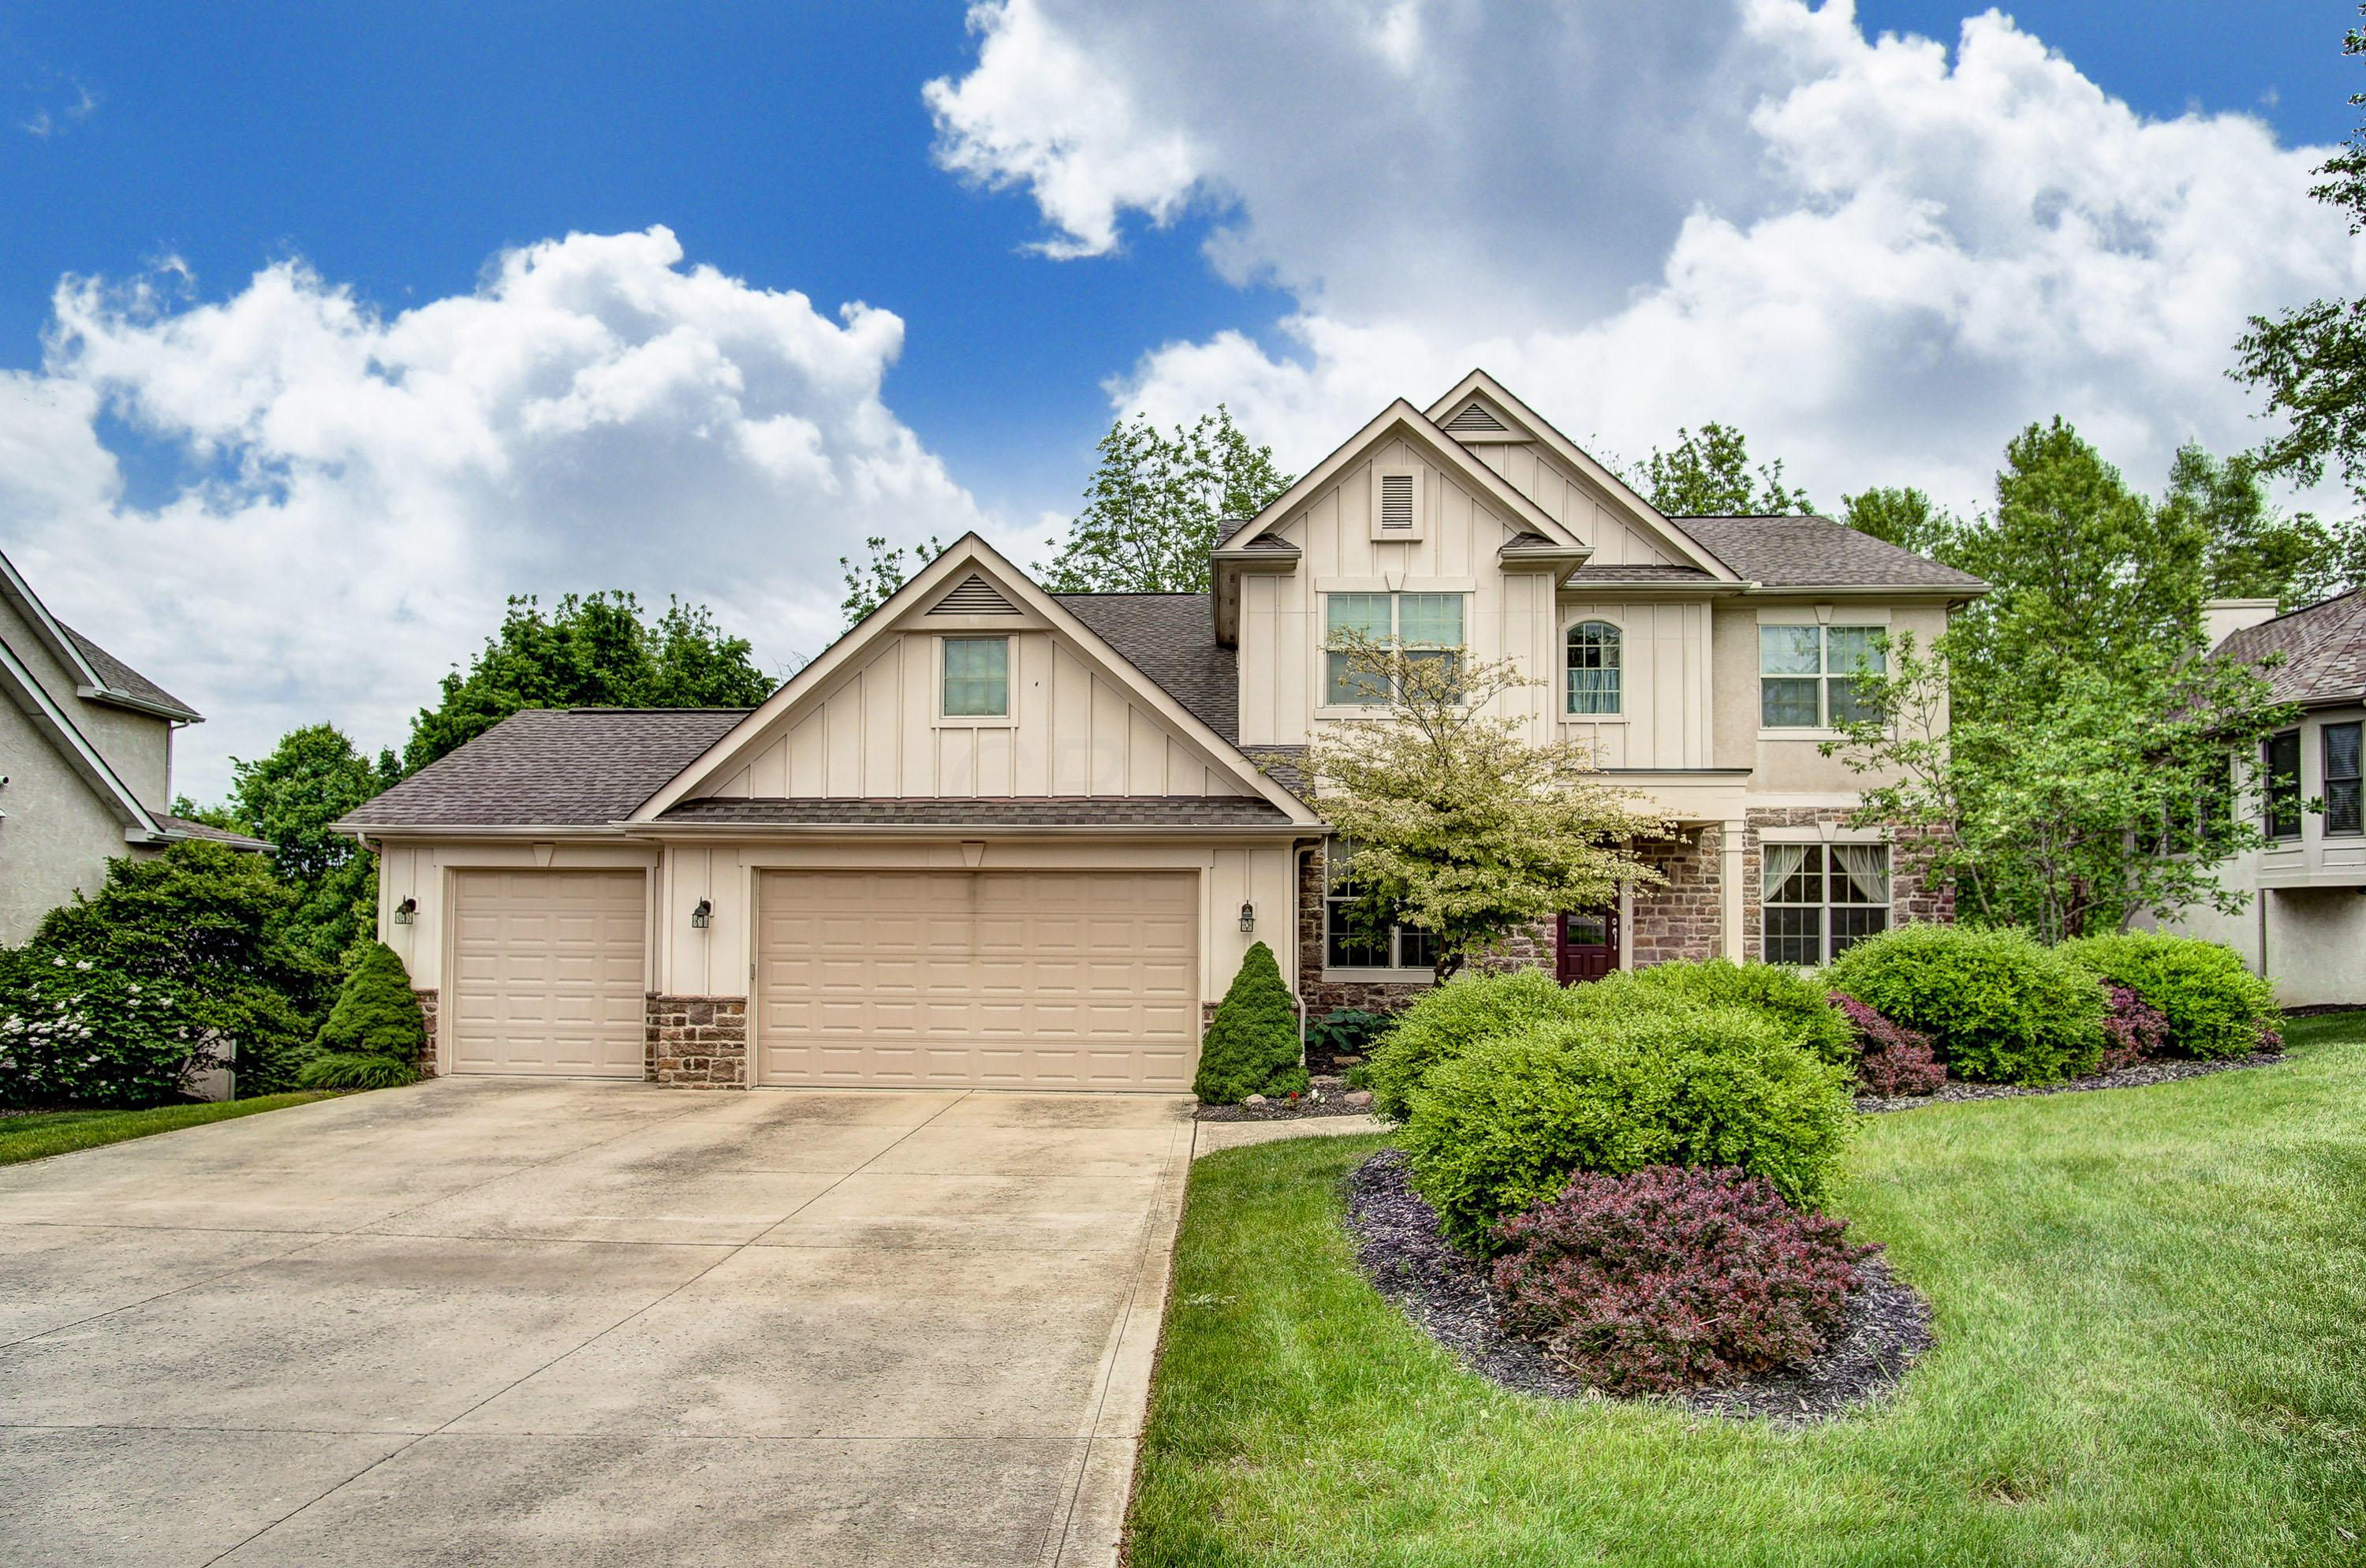 Photo of 5277 Royal County Down, Westerville, OH 43082